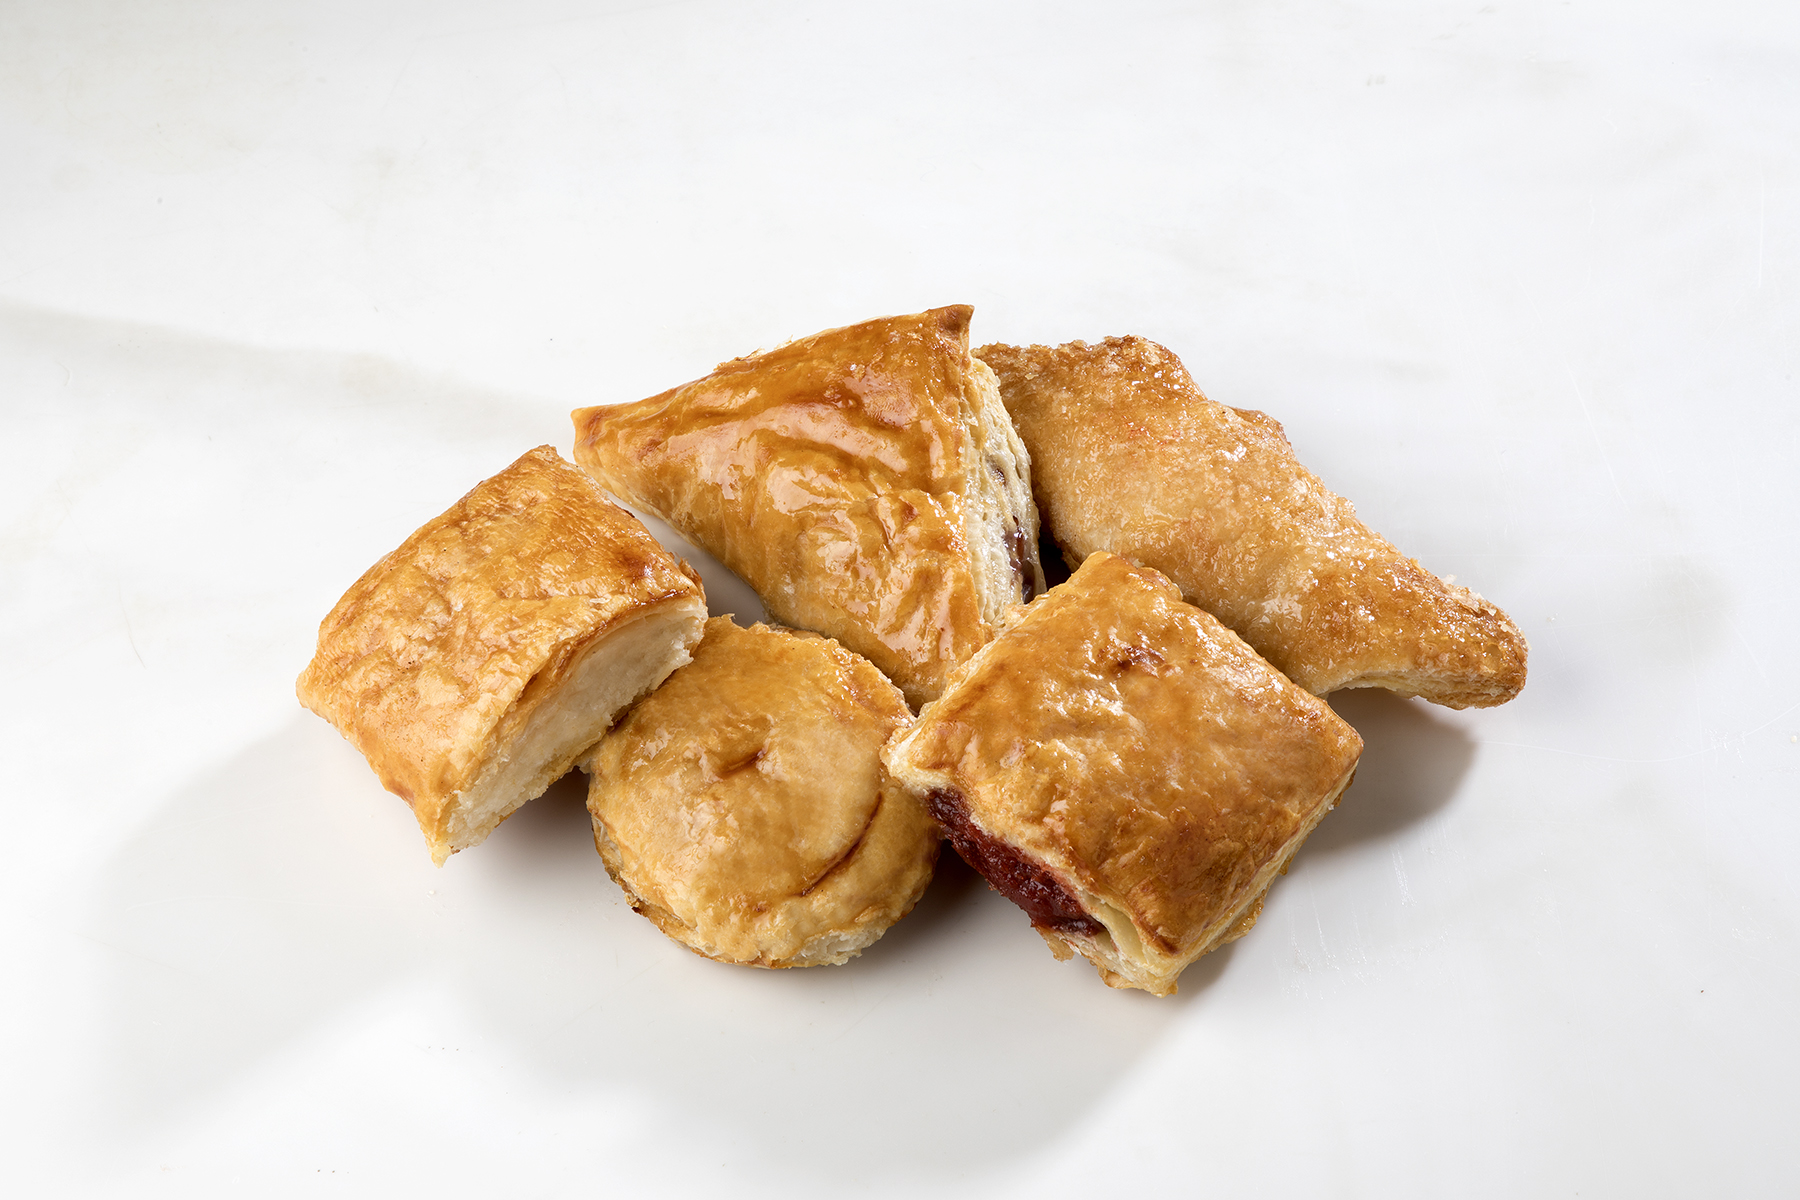 Versailles Bakery guava pastries meddley